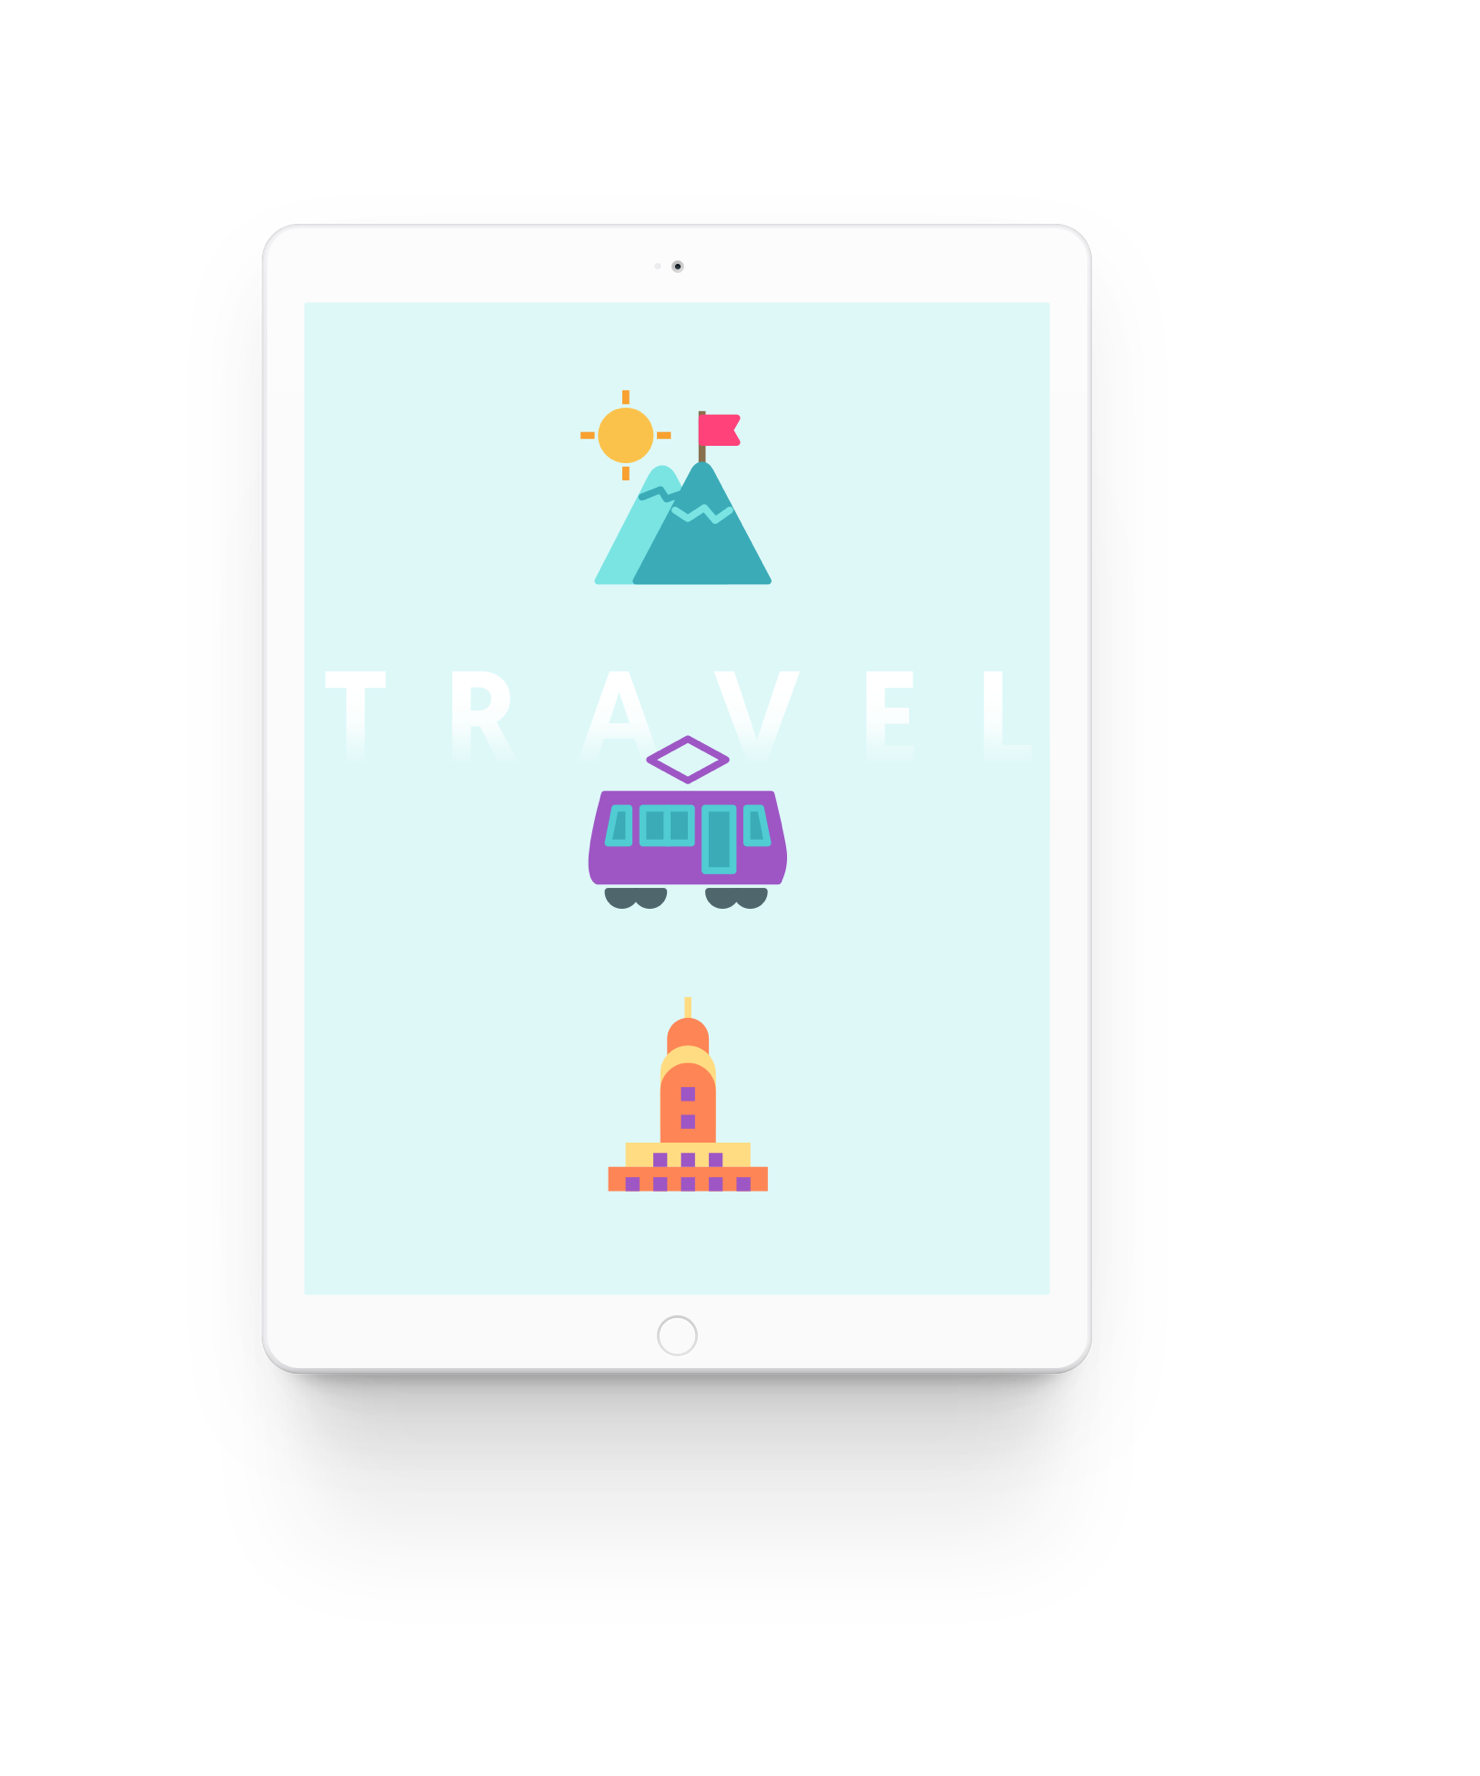 96 custom, colorful travel icons that will fuel wanderlust.